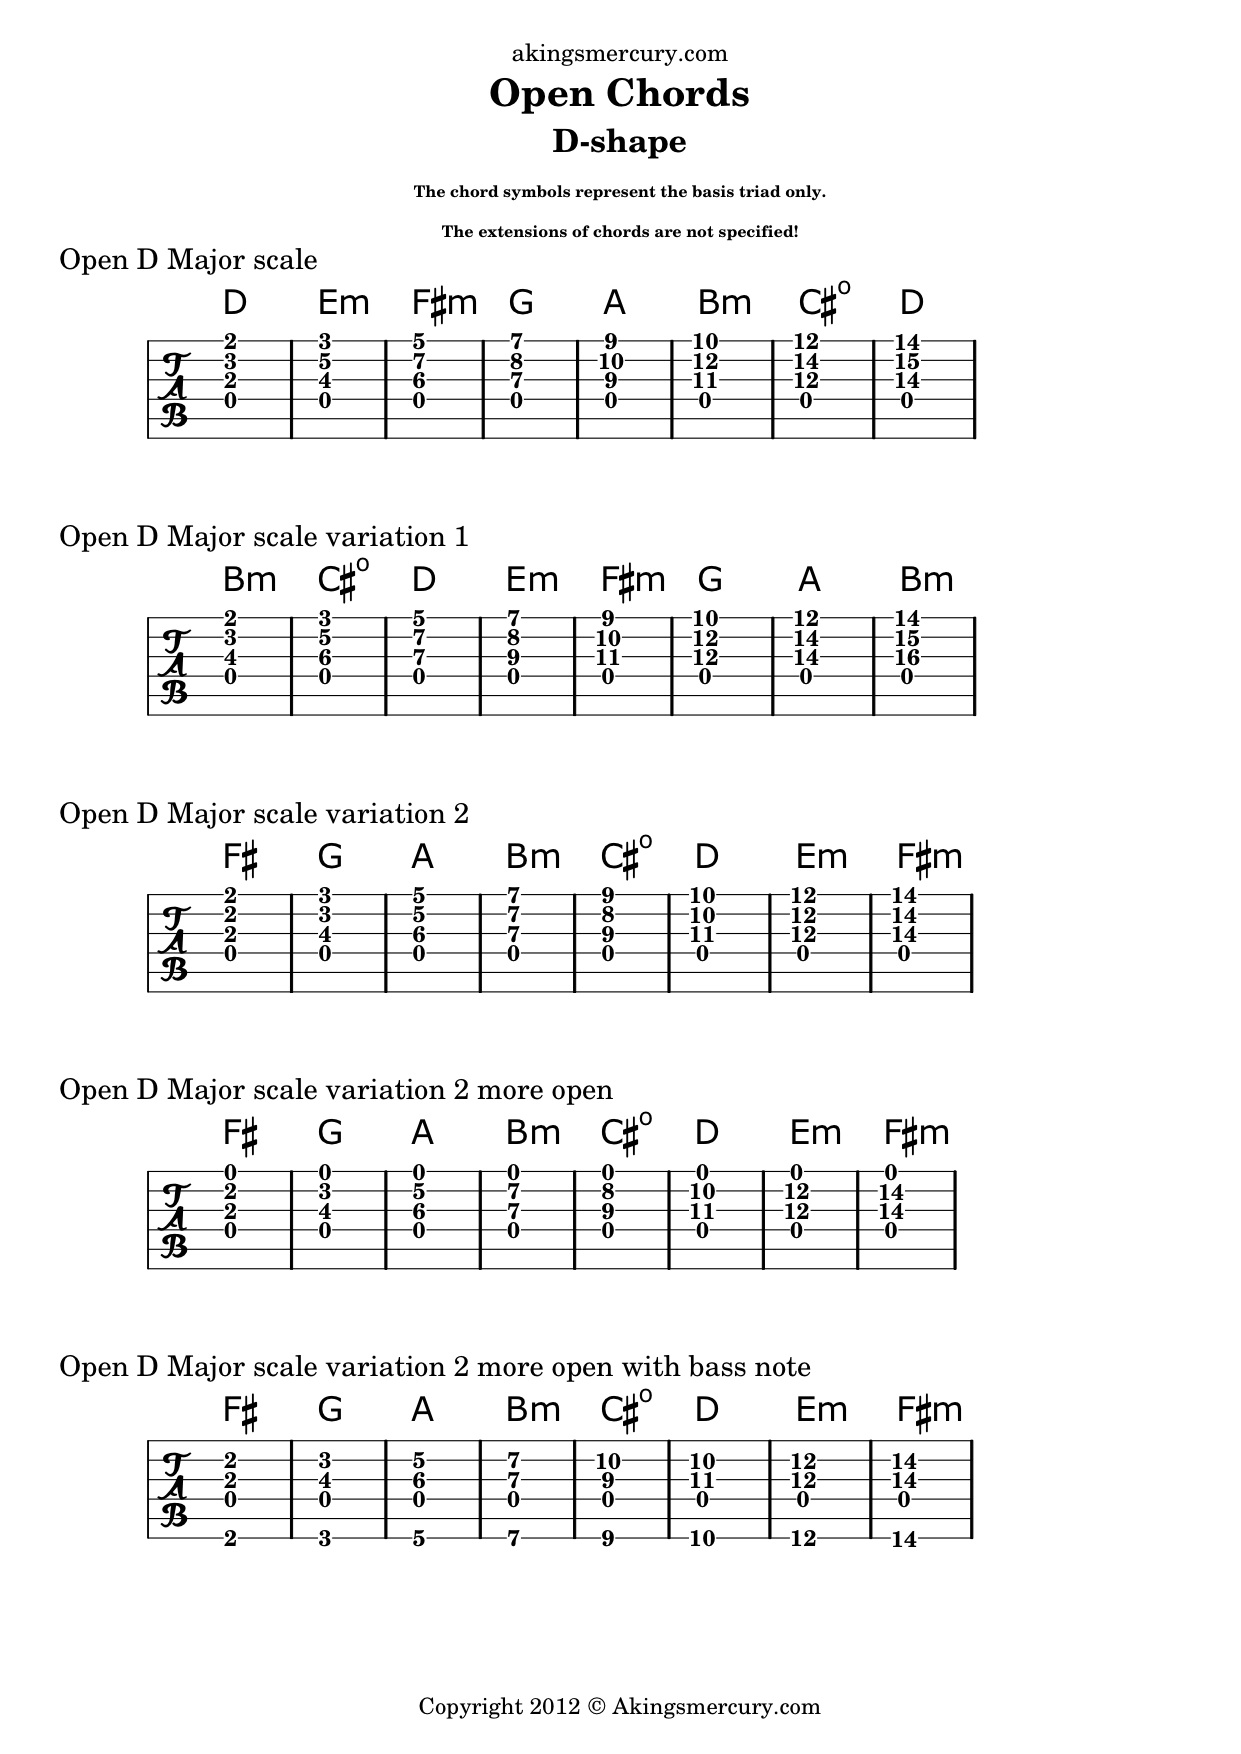 A Kings Mercury u2013 210 Awesome Open Guitar Chords and How to Use Them